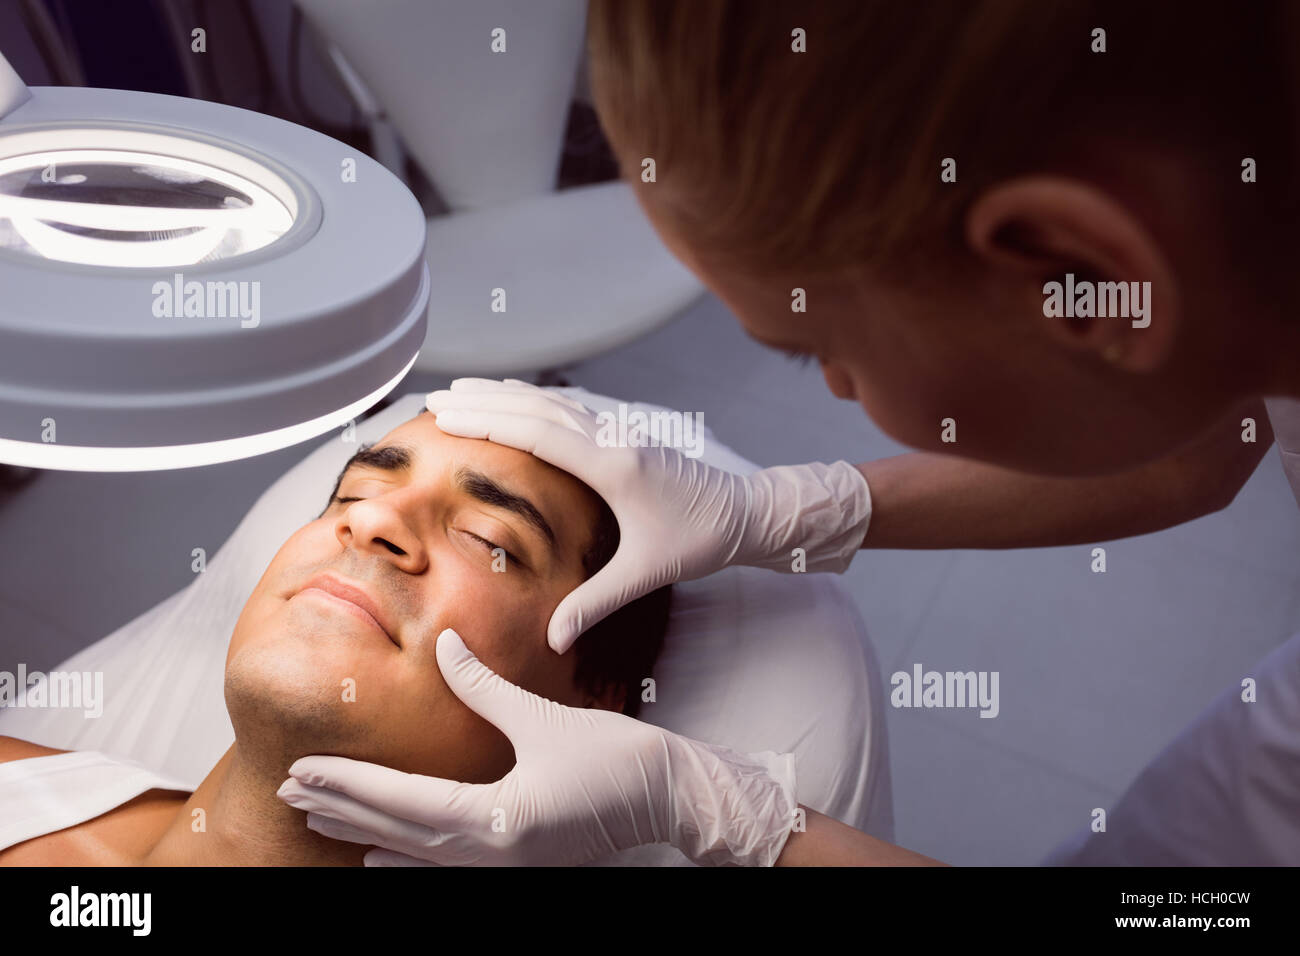 Doctor examining mans face for cosmetic treatment - Stock Image